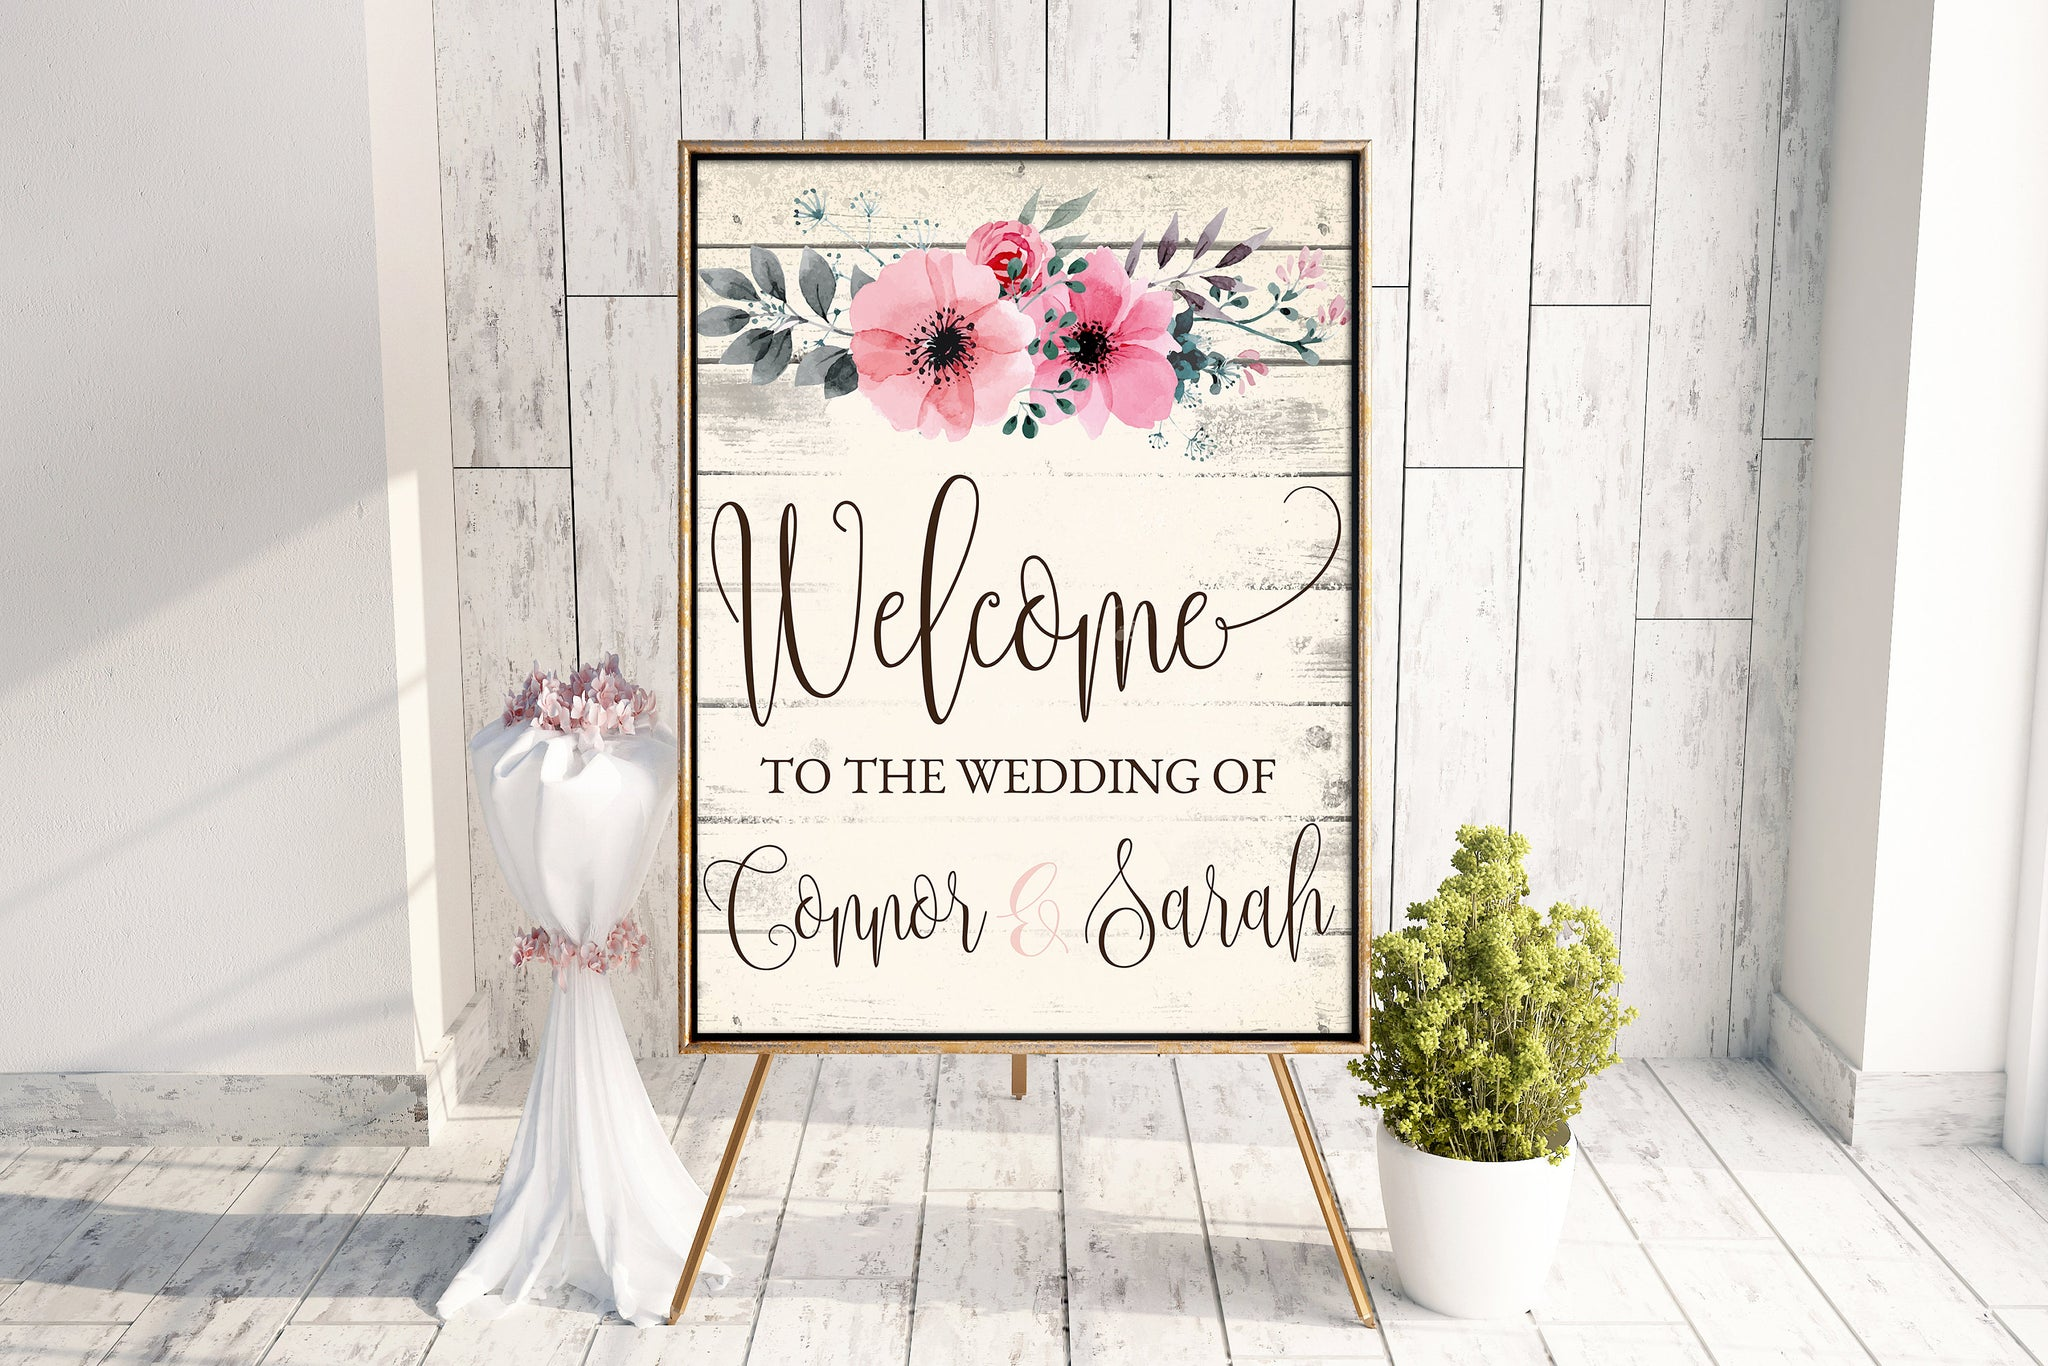 Wedding Welcome Floral Sign - Anniversary Welcome Sign - Party Welcome Sign - Antique White Floral Sign - 16x20 Floral Event Welcome Sign